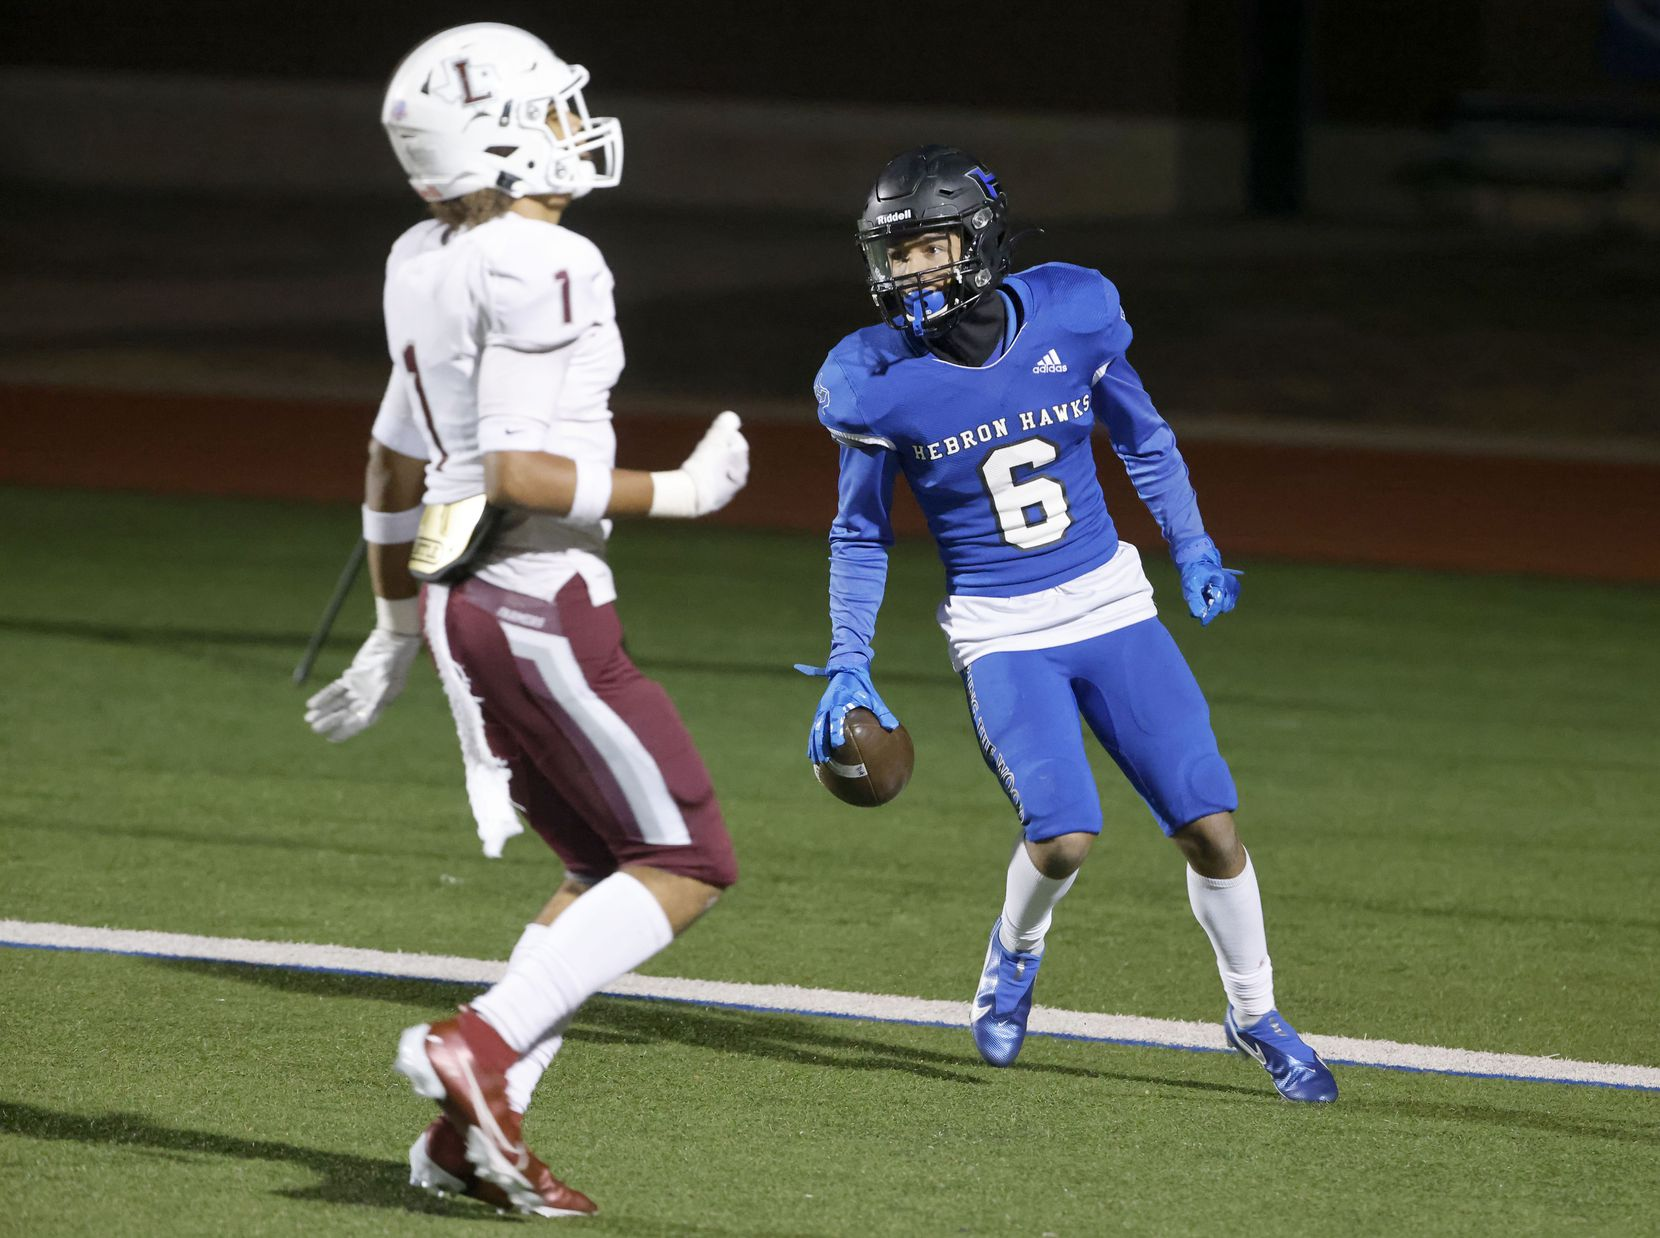 Hebron's Takoda Bridges (6) celebrates his reception for a touchdown in front of Lewisville's Jaydan Hardy (1) during their District 6-6A high school football game on Dec. 4, 2020. (Michael Ainsworth/Special Contributor)